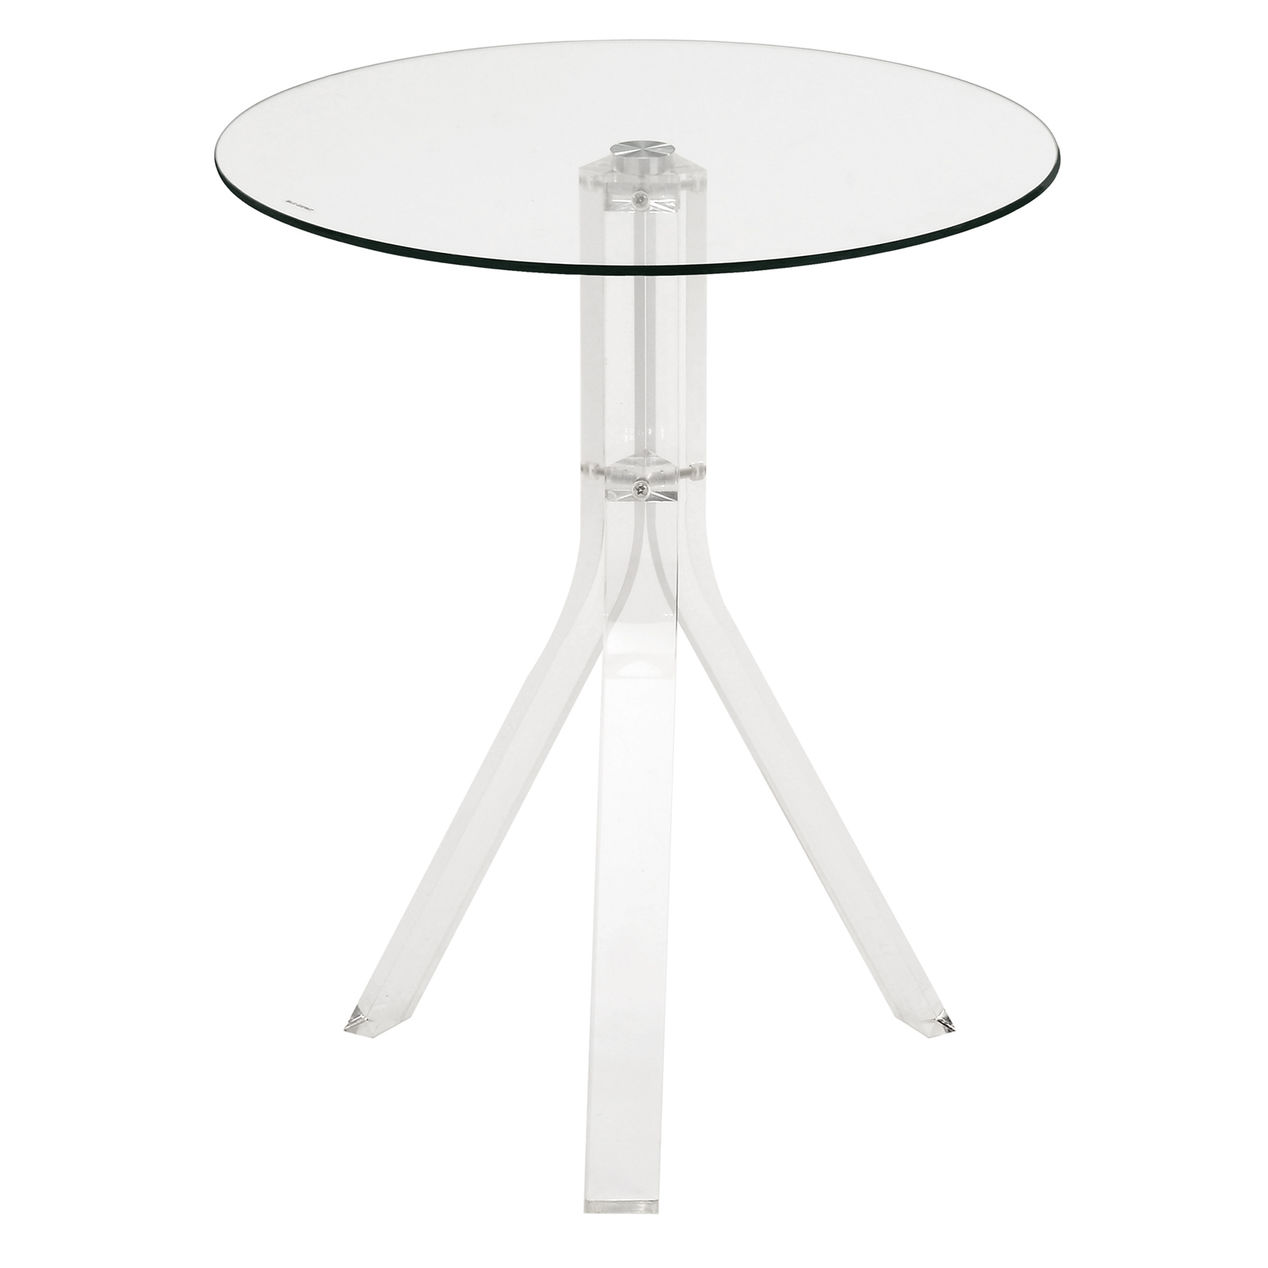 acrylic round accent table home skirts lucite legs and bases target threshold clear glass coffee iron base baby bedding lazy susan white side mini bedside teak patio furniture